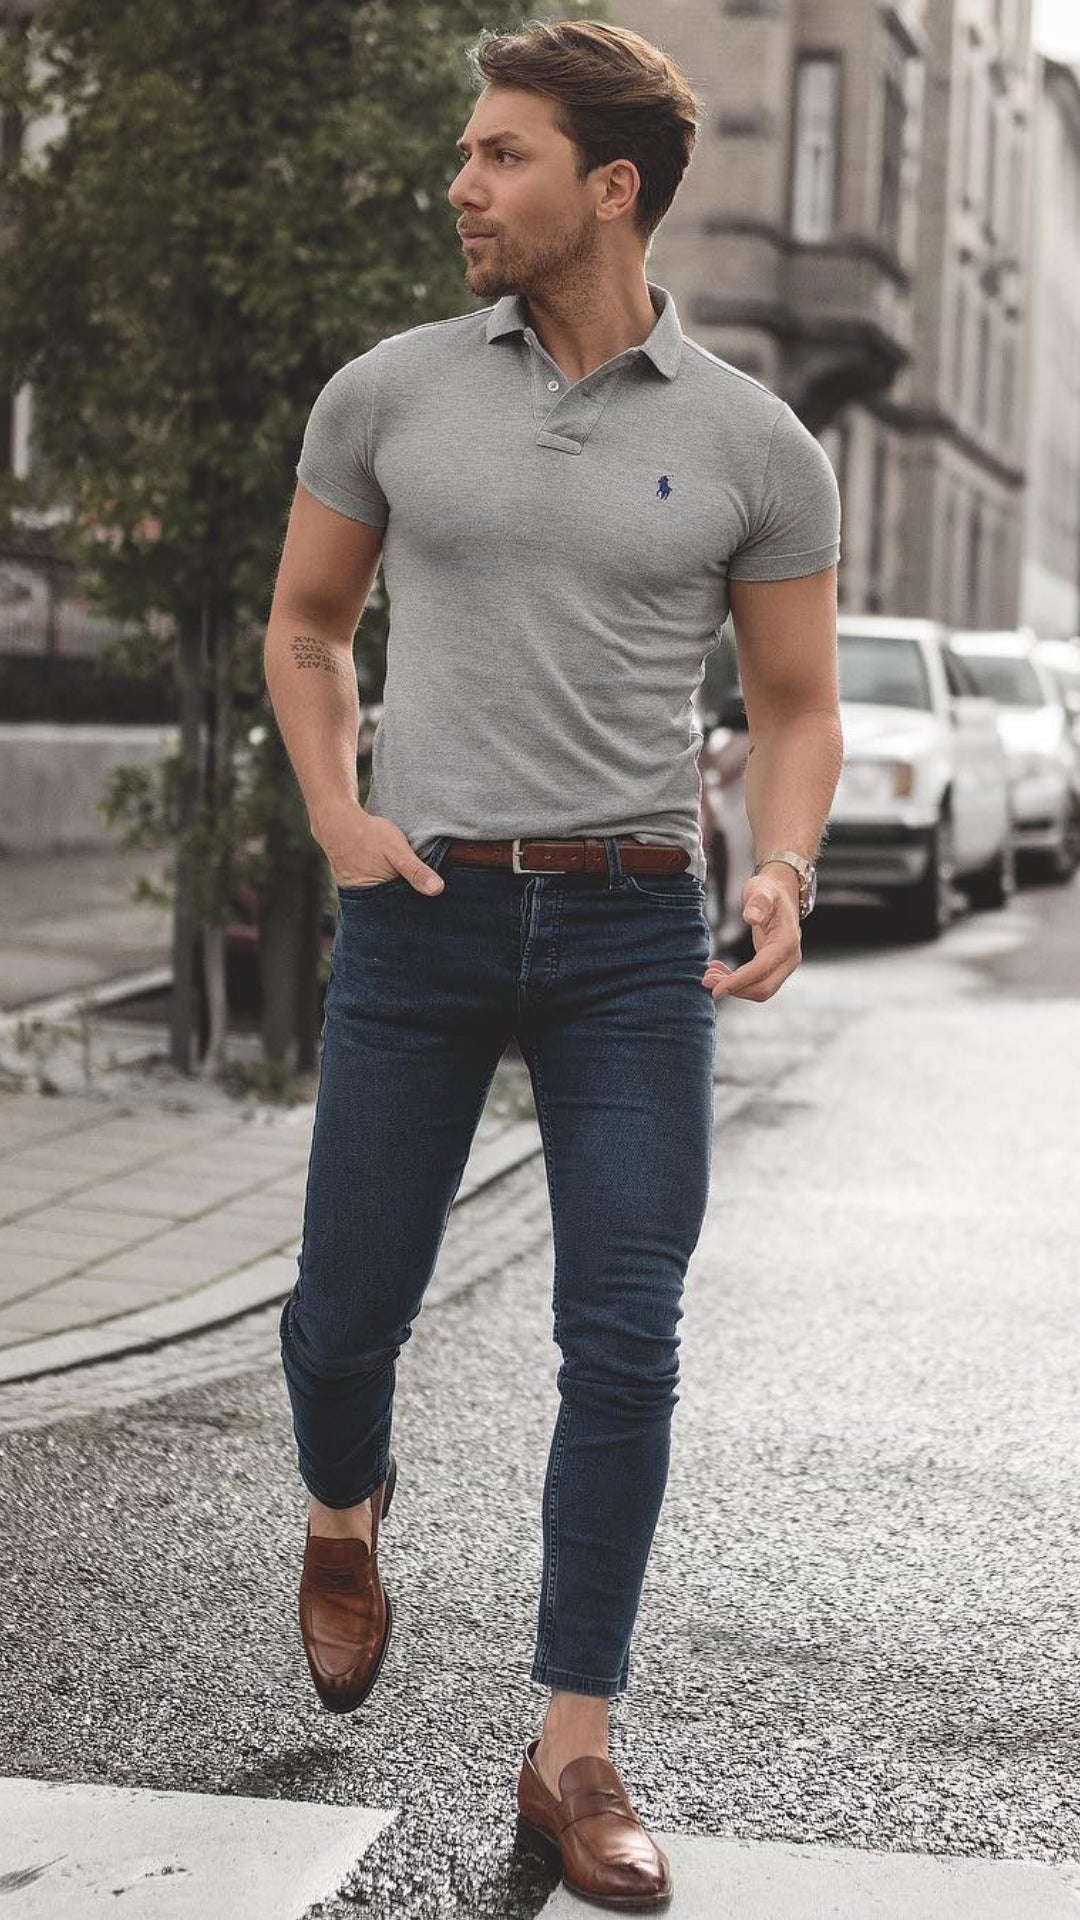 5 Polo Shirt Outfits For Men #poloshirtoutfits #streetstyle